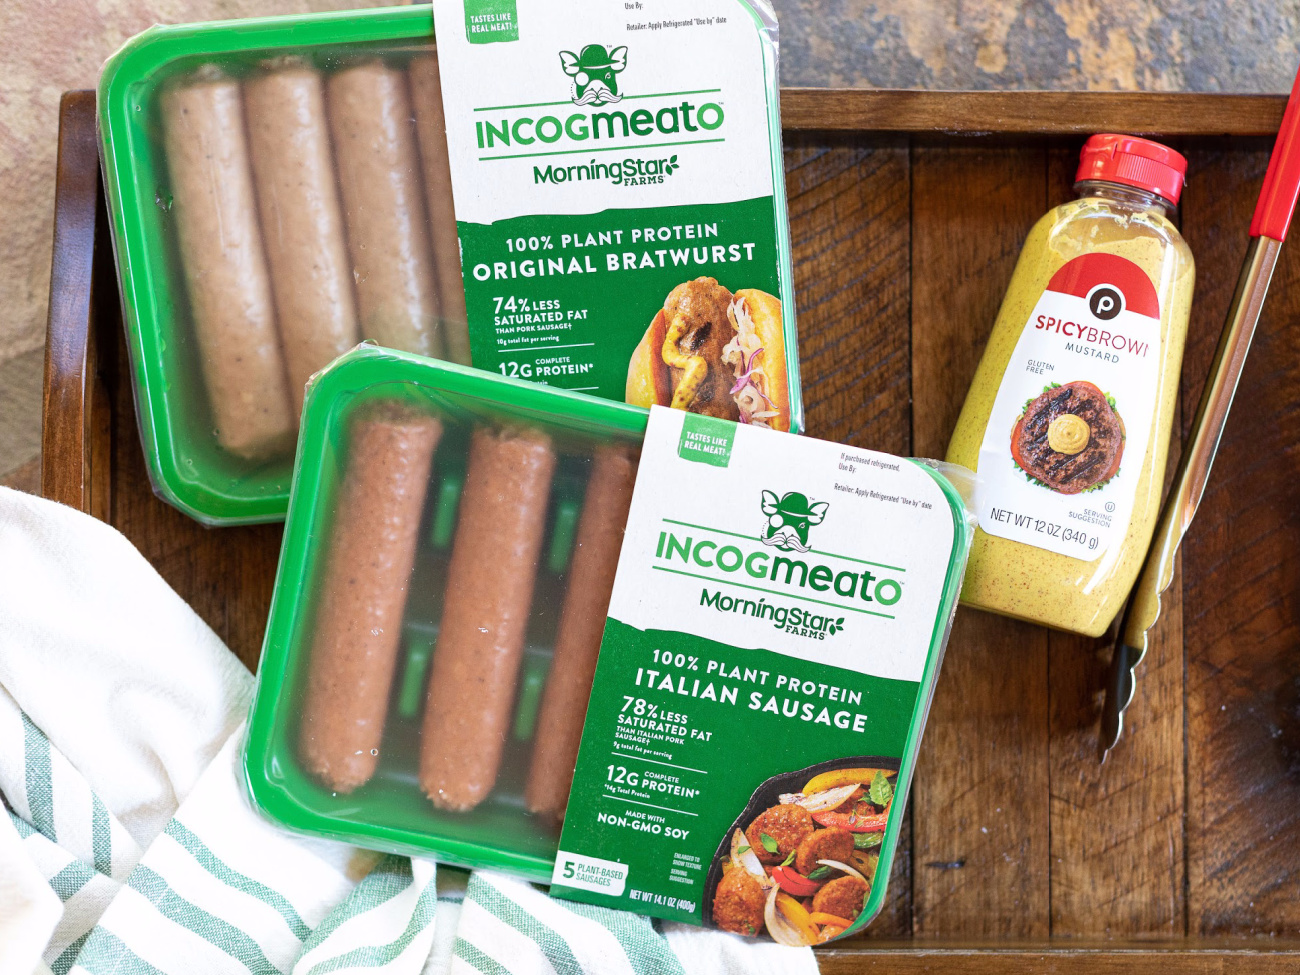 Incogmeato Bratwurst and Italian Sausage Products Are Available At Select Publix Stores - Tasty, Juicy And 100% Plant Based! on I Heart Publix 4